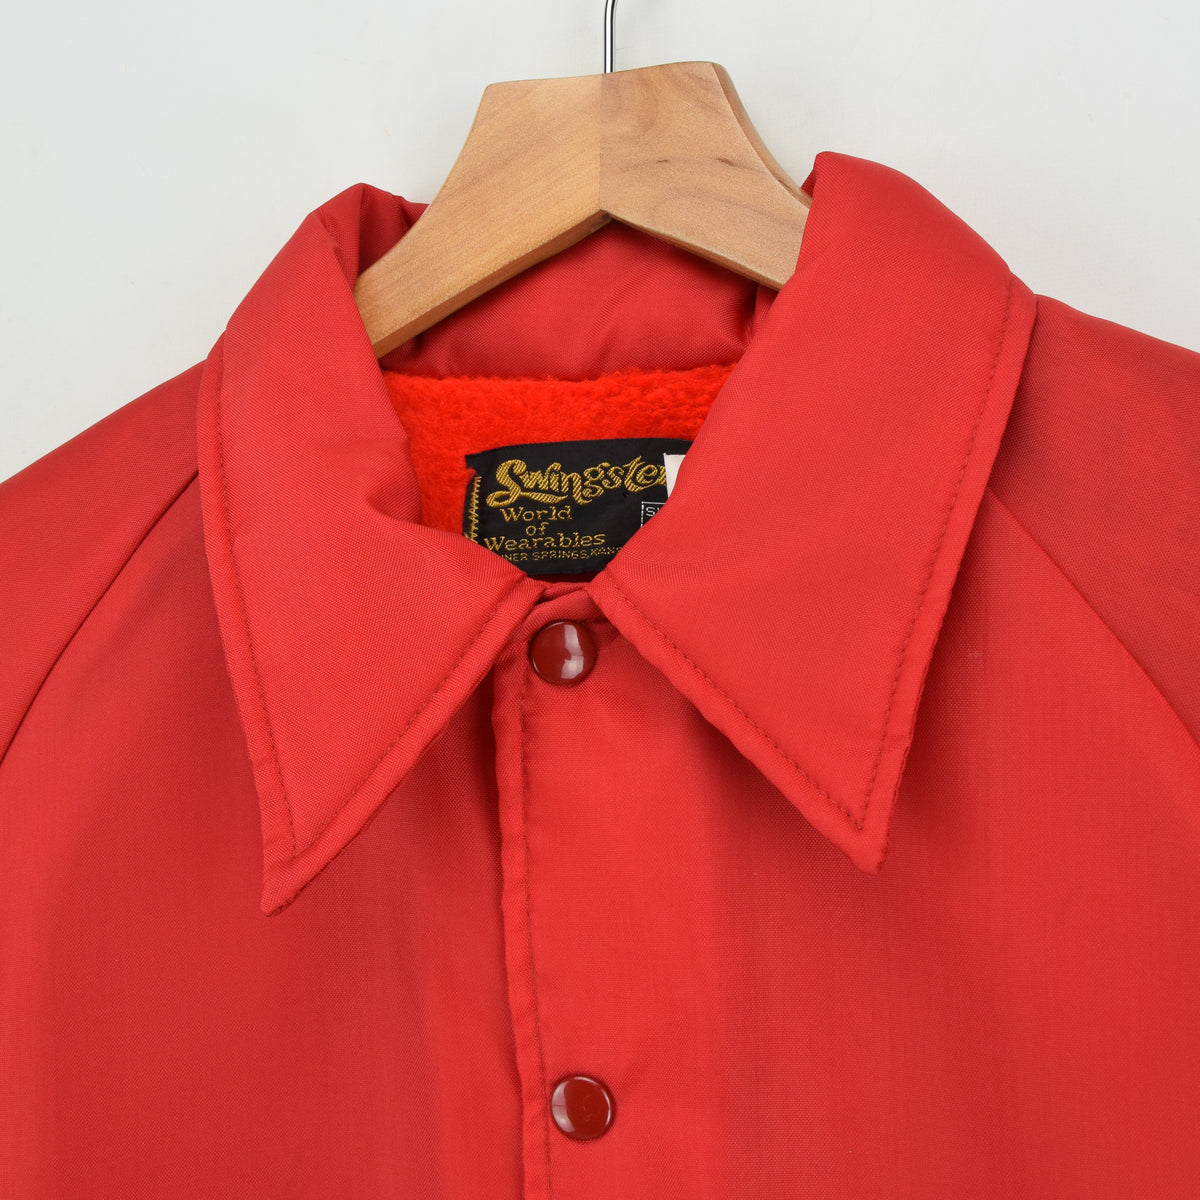 Vintage Swingsters Red Nylon Coach Jacket Made in USA M collar